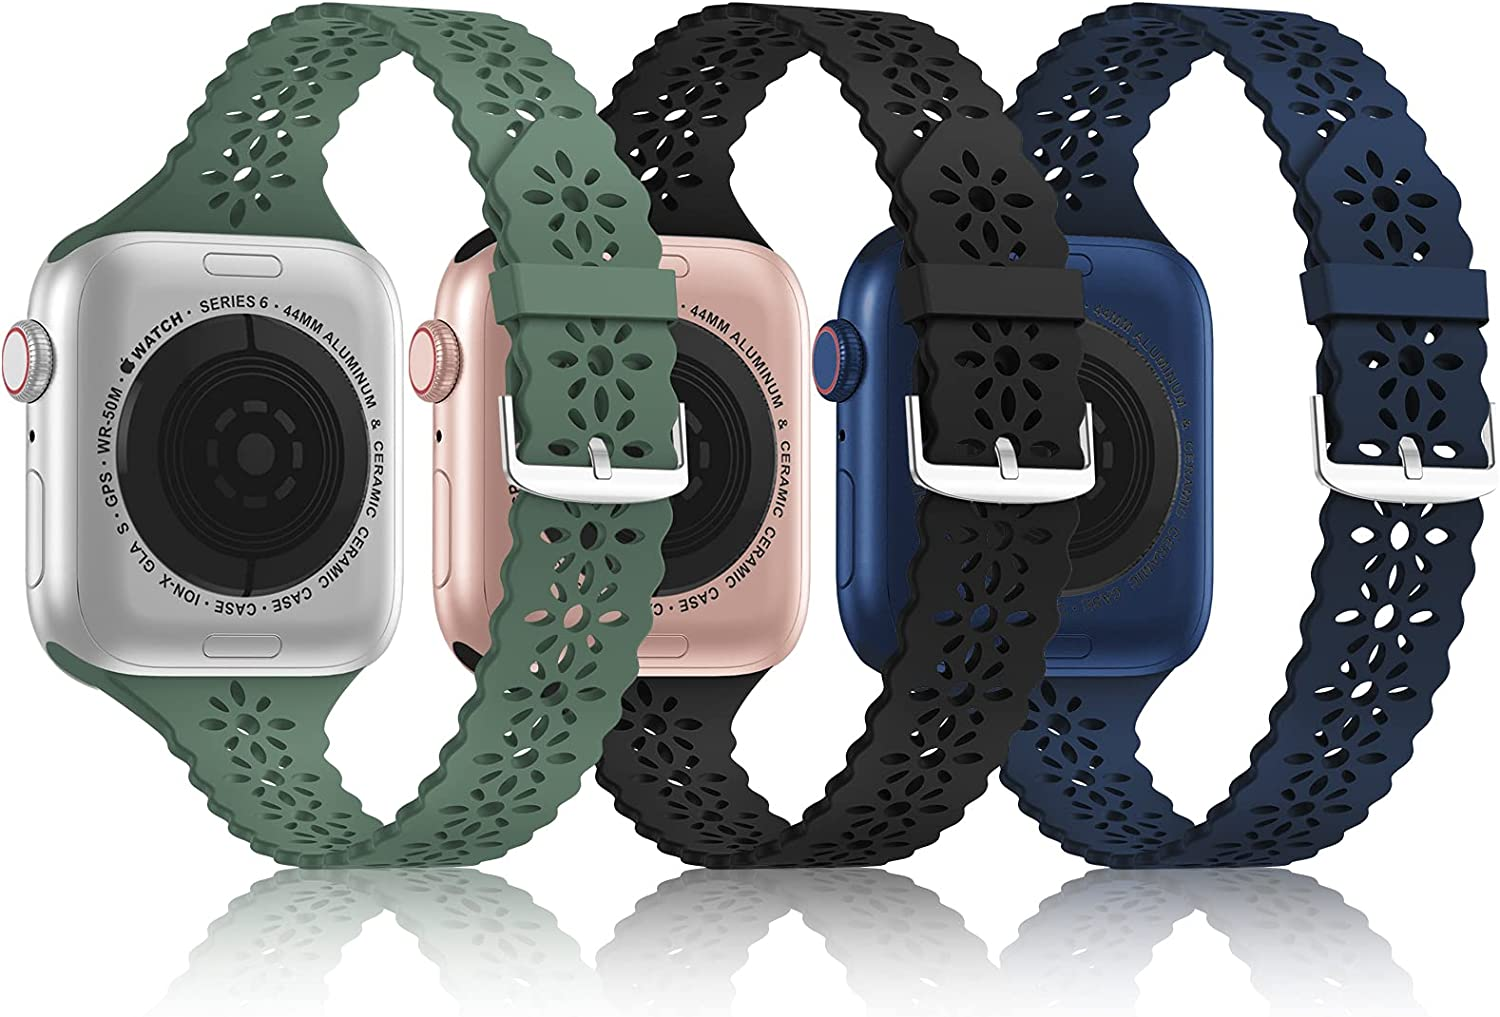 [3Pack]Bandiction Slim Lace Band Compatible With Apple Watch Bands 38mm 40mm 42mm 44mm for Women and Men, Silicone Wristbands Strap Replacement for iWatch Series6/5/4/3/2/1/SE